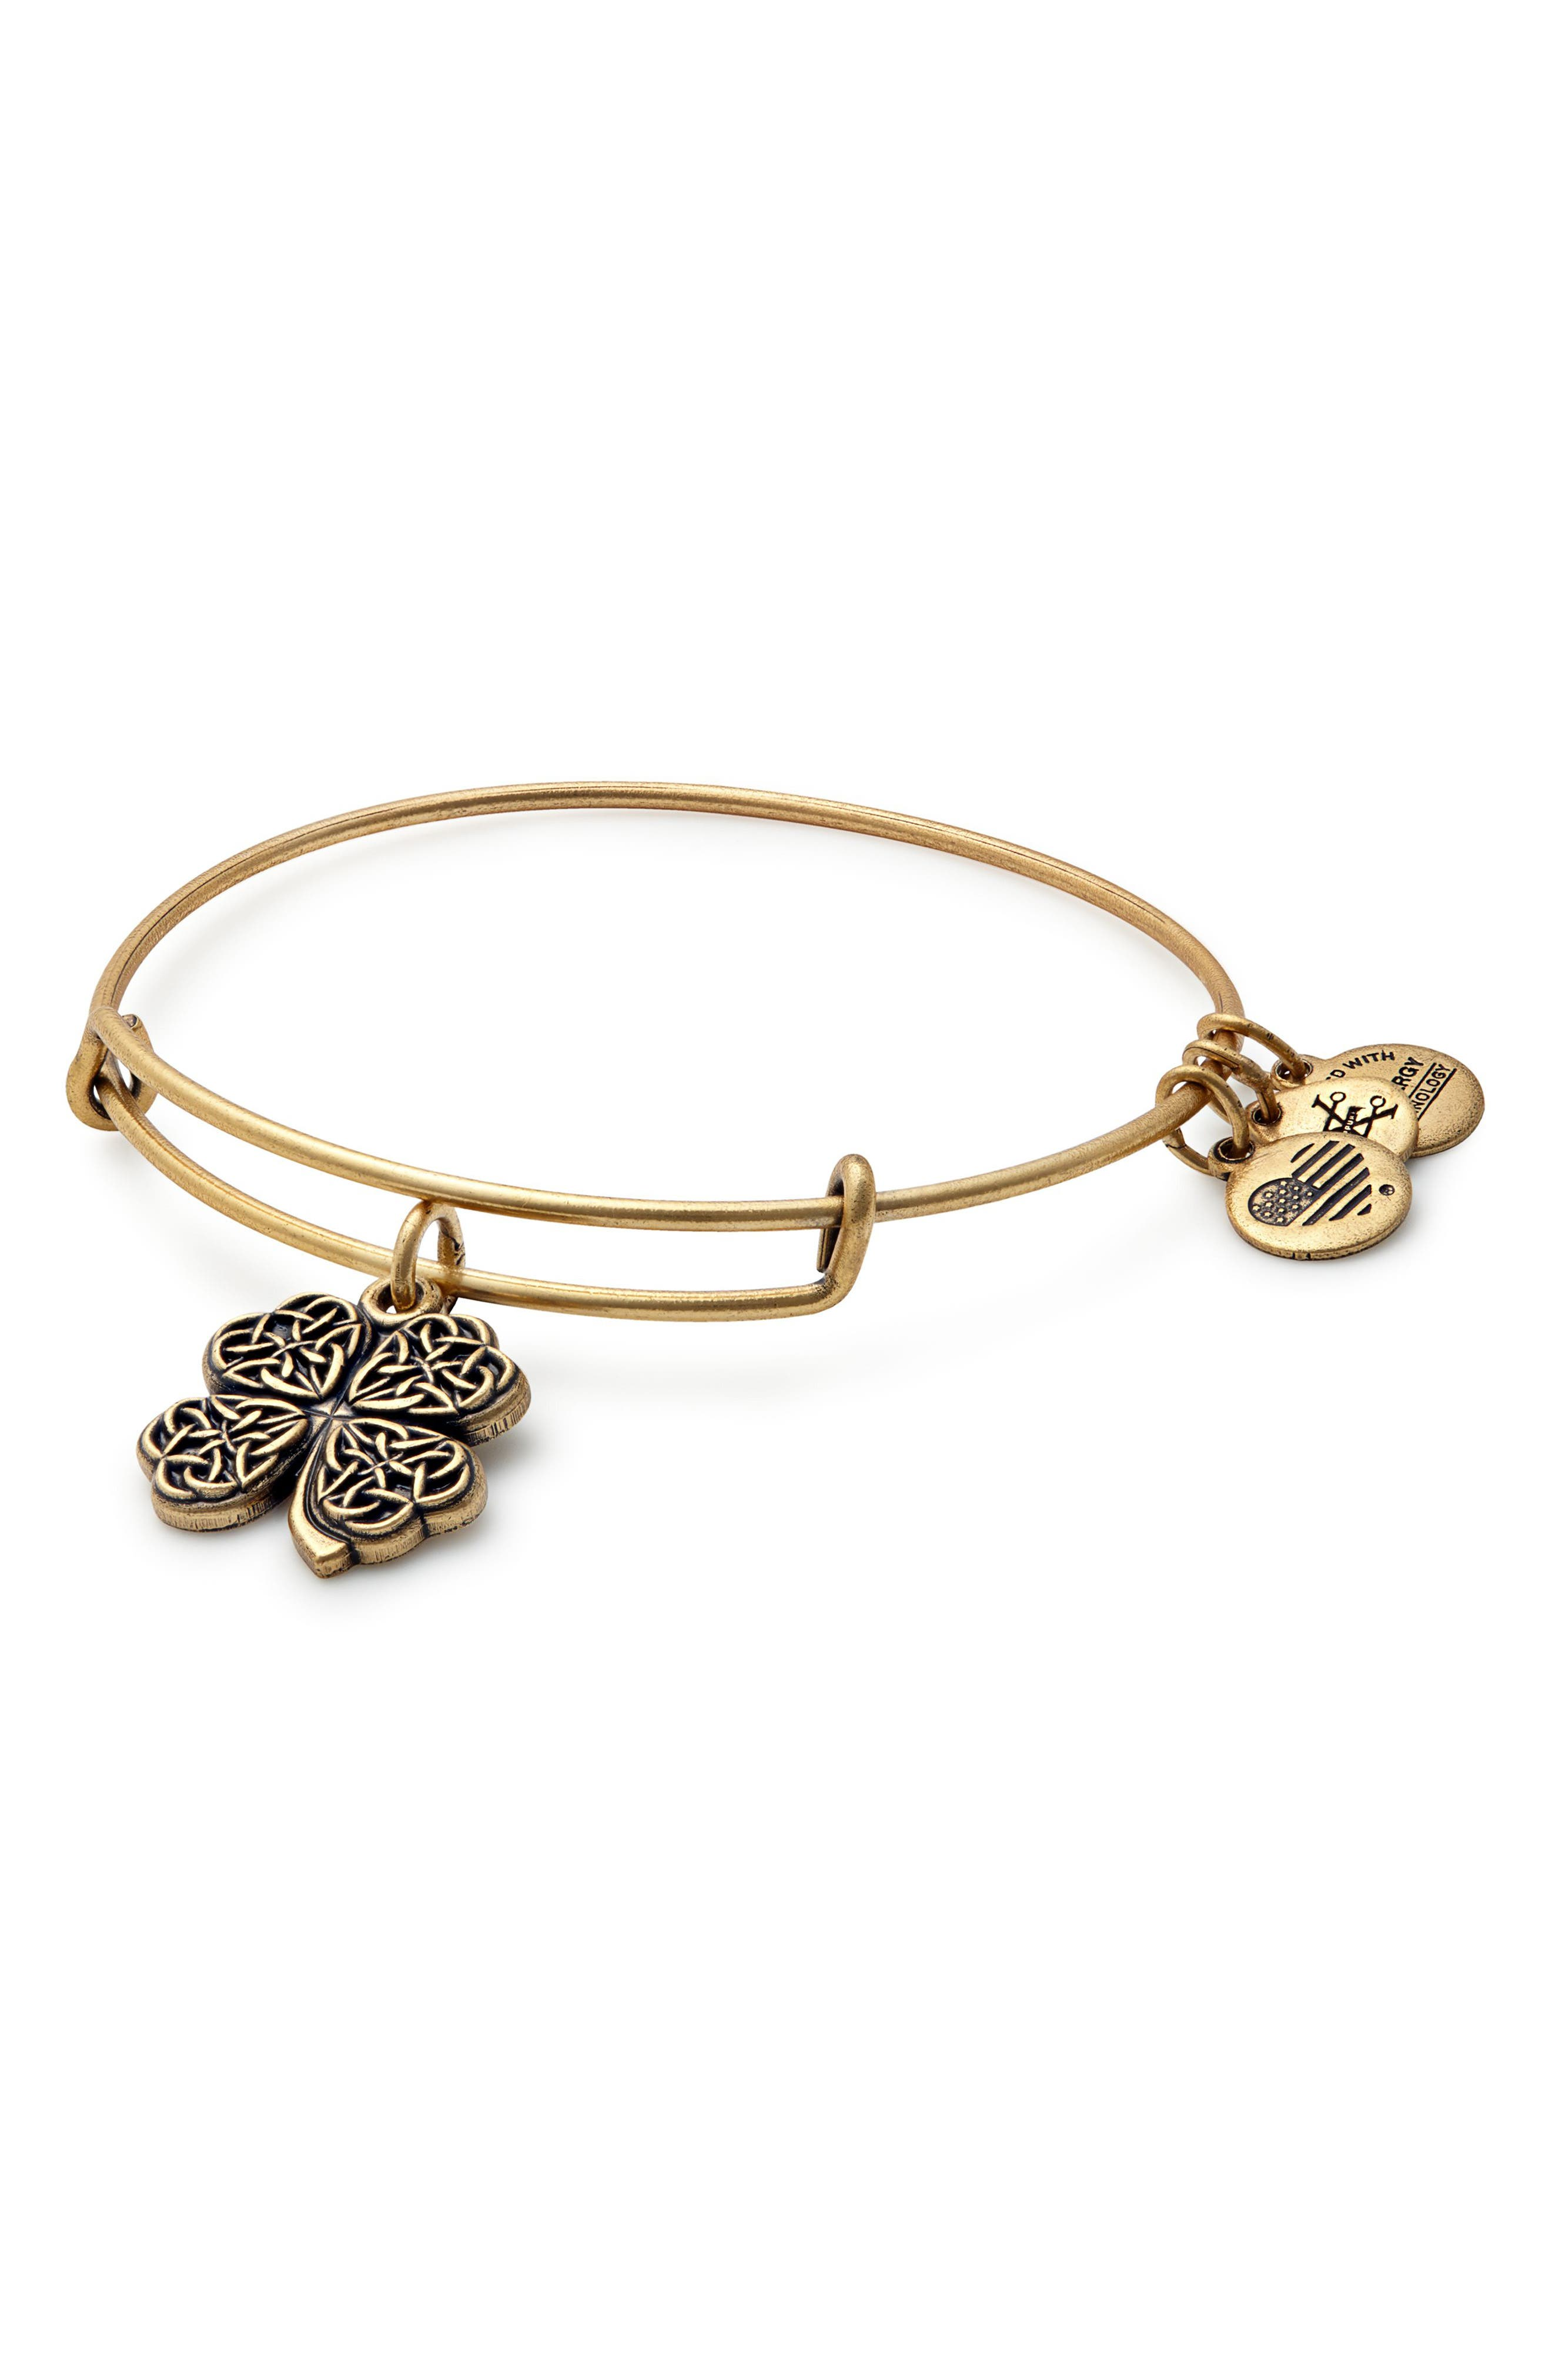 Alternate Image 1 Selected - Alex and Ani Four-Leaf Clover Adjustable Wire Bangle